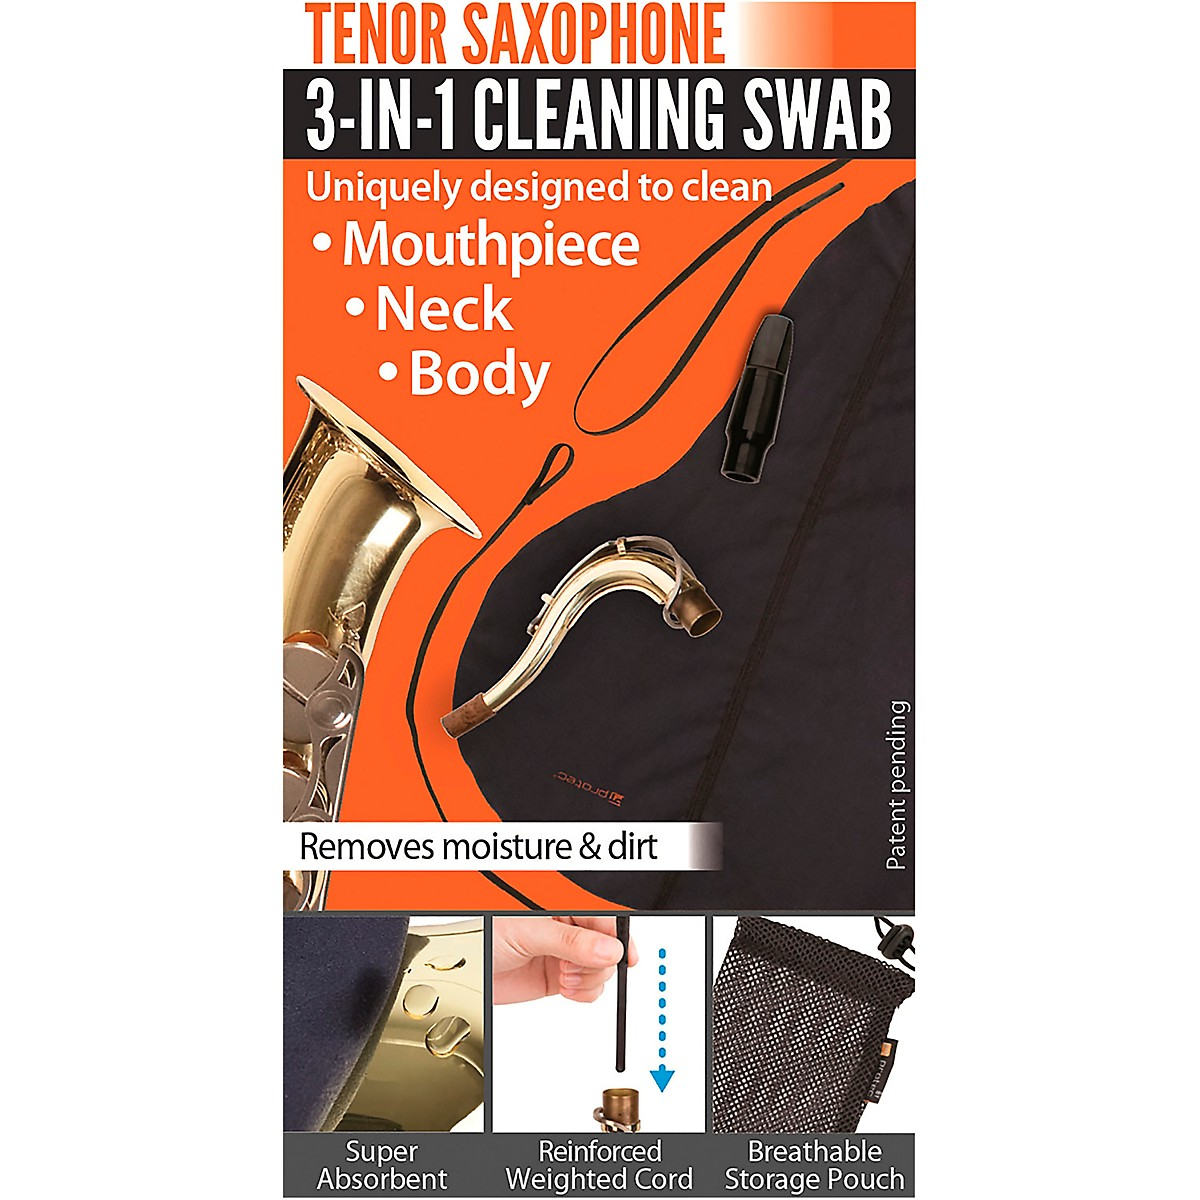 Protec 3-in-1 Tenor Saxophone Swab (Body, Neck, and Mouthpiece)